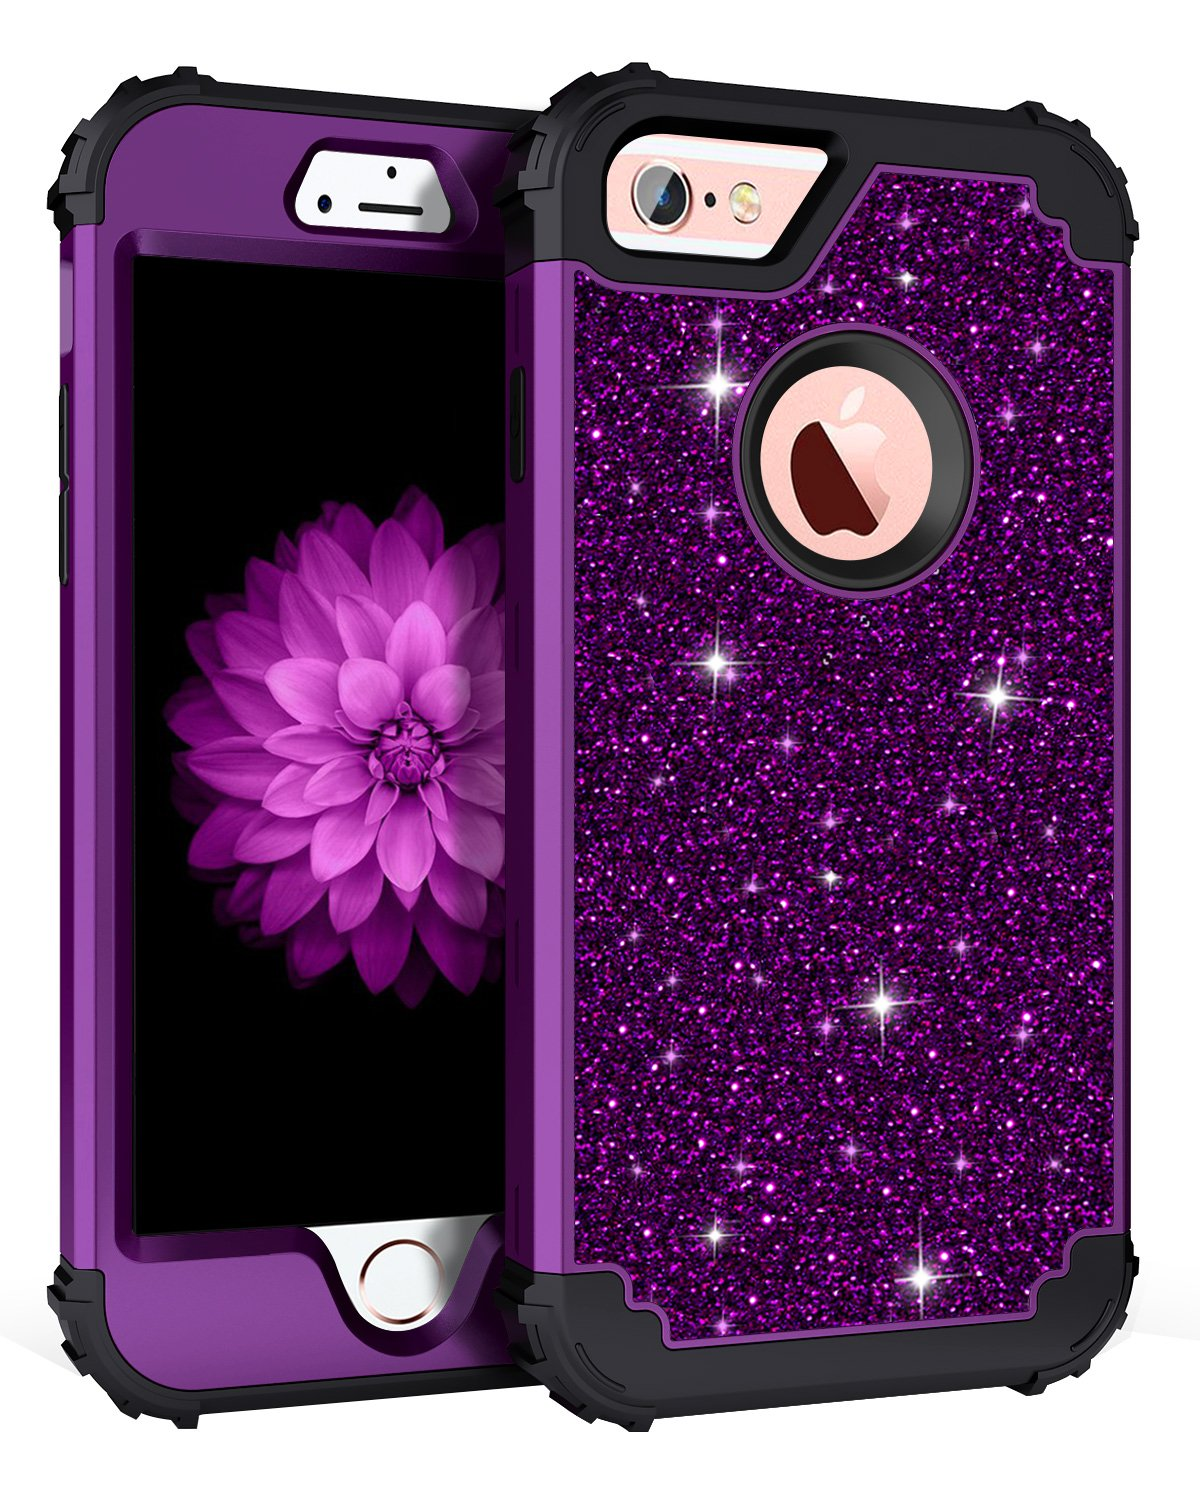 Pandawell Compatible iPhone 6s Case, iPhone 6 Case, Glitter Sparkle Bling Heavy Duty Hybrid Sturdy Armor Defender High Impact Shockproof Protective Cover Case for Apple iPhone 6s/6, Shiny Purple/Black